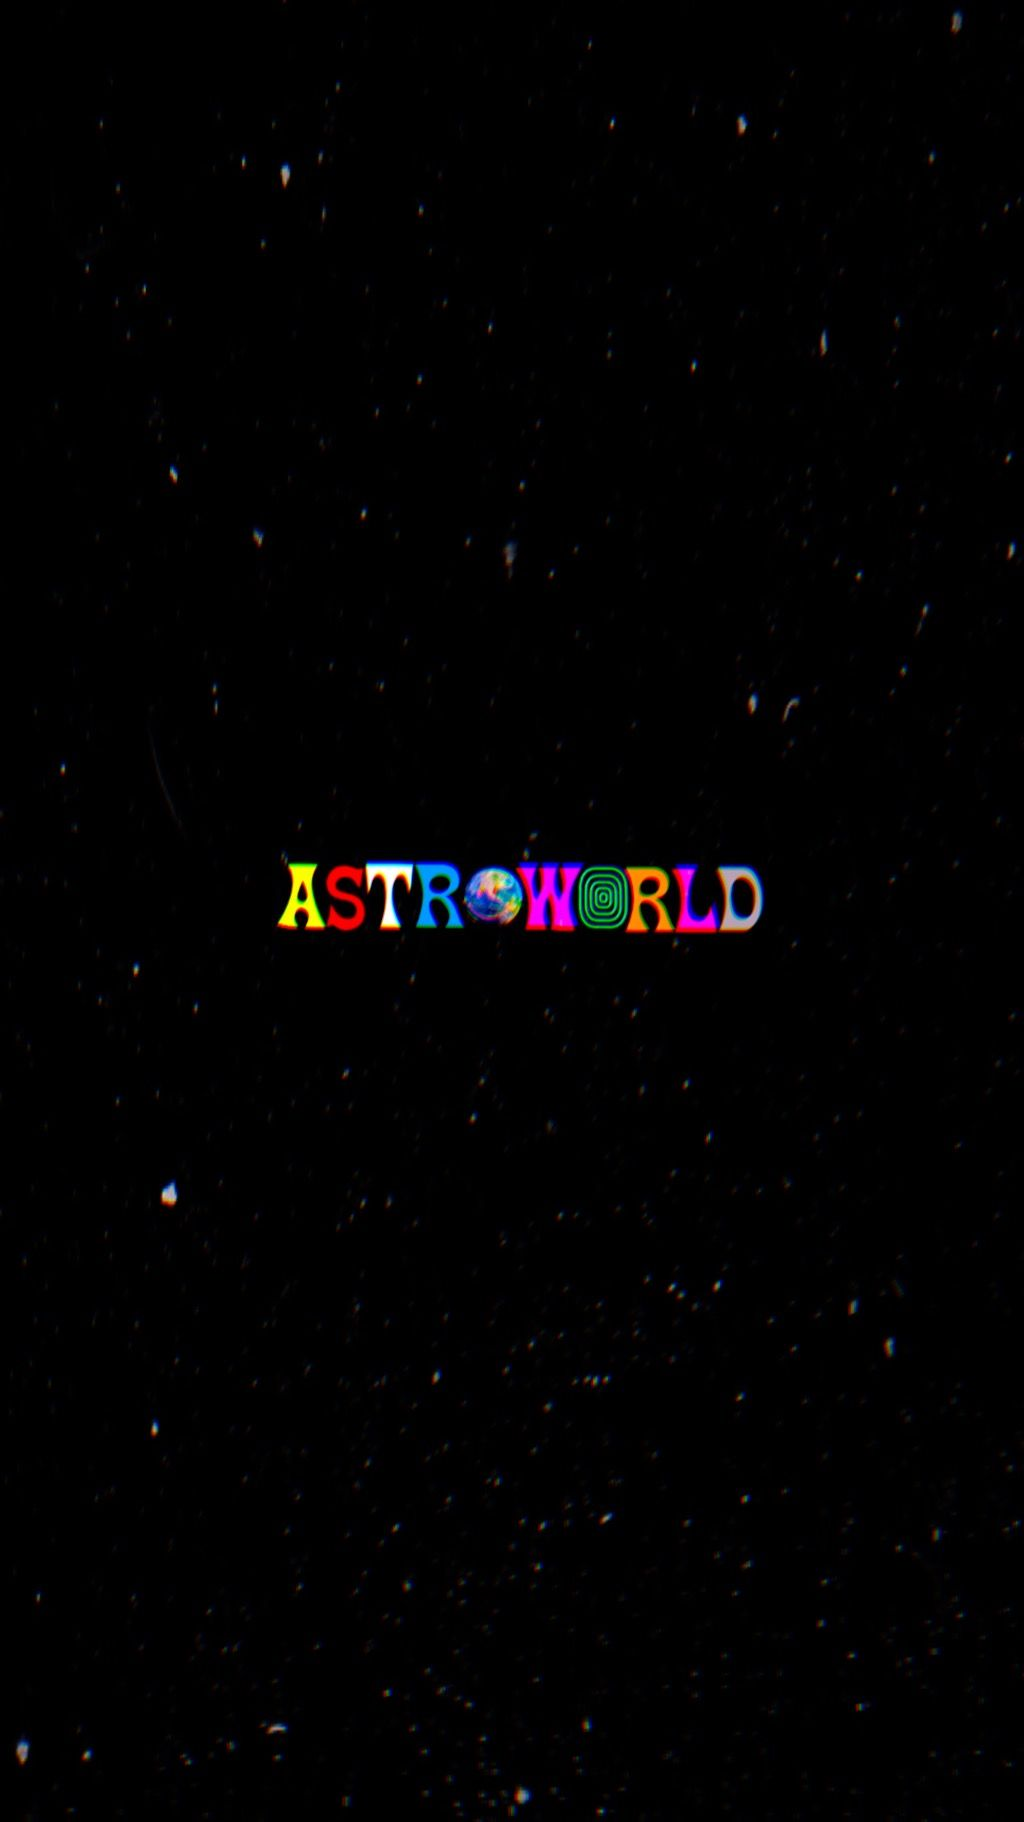 Pin by chin on ASTROWORLD TRAVIS SCOTT FAN ART Hypebeast